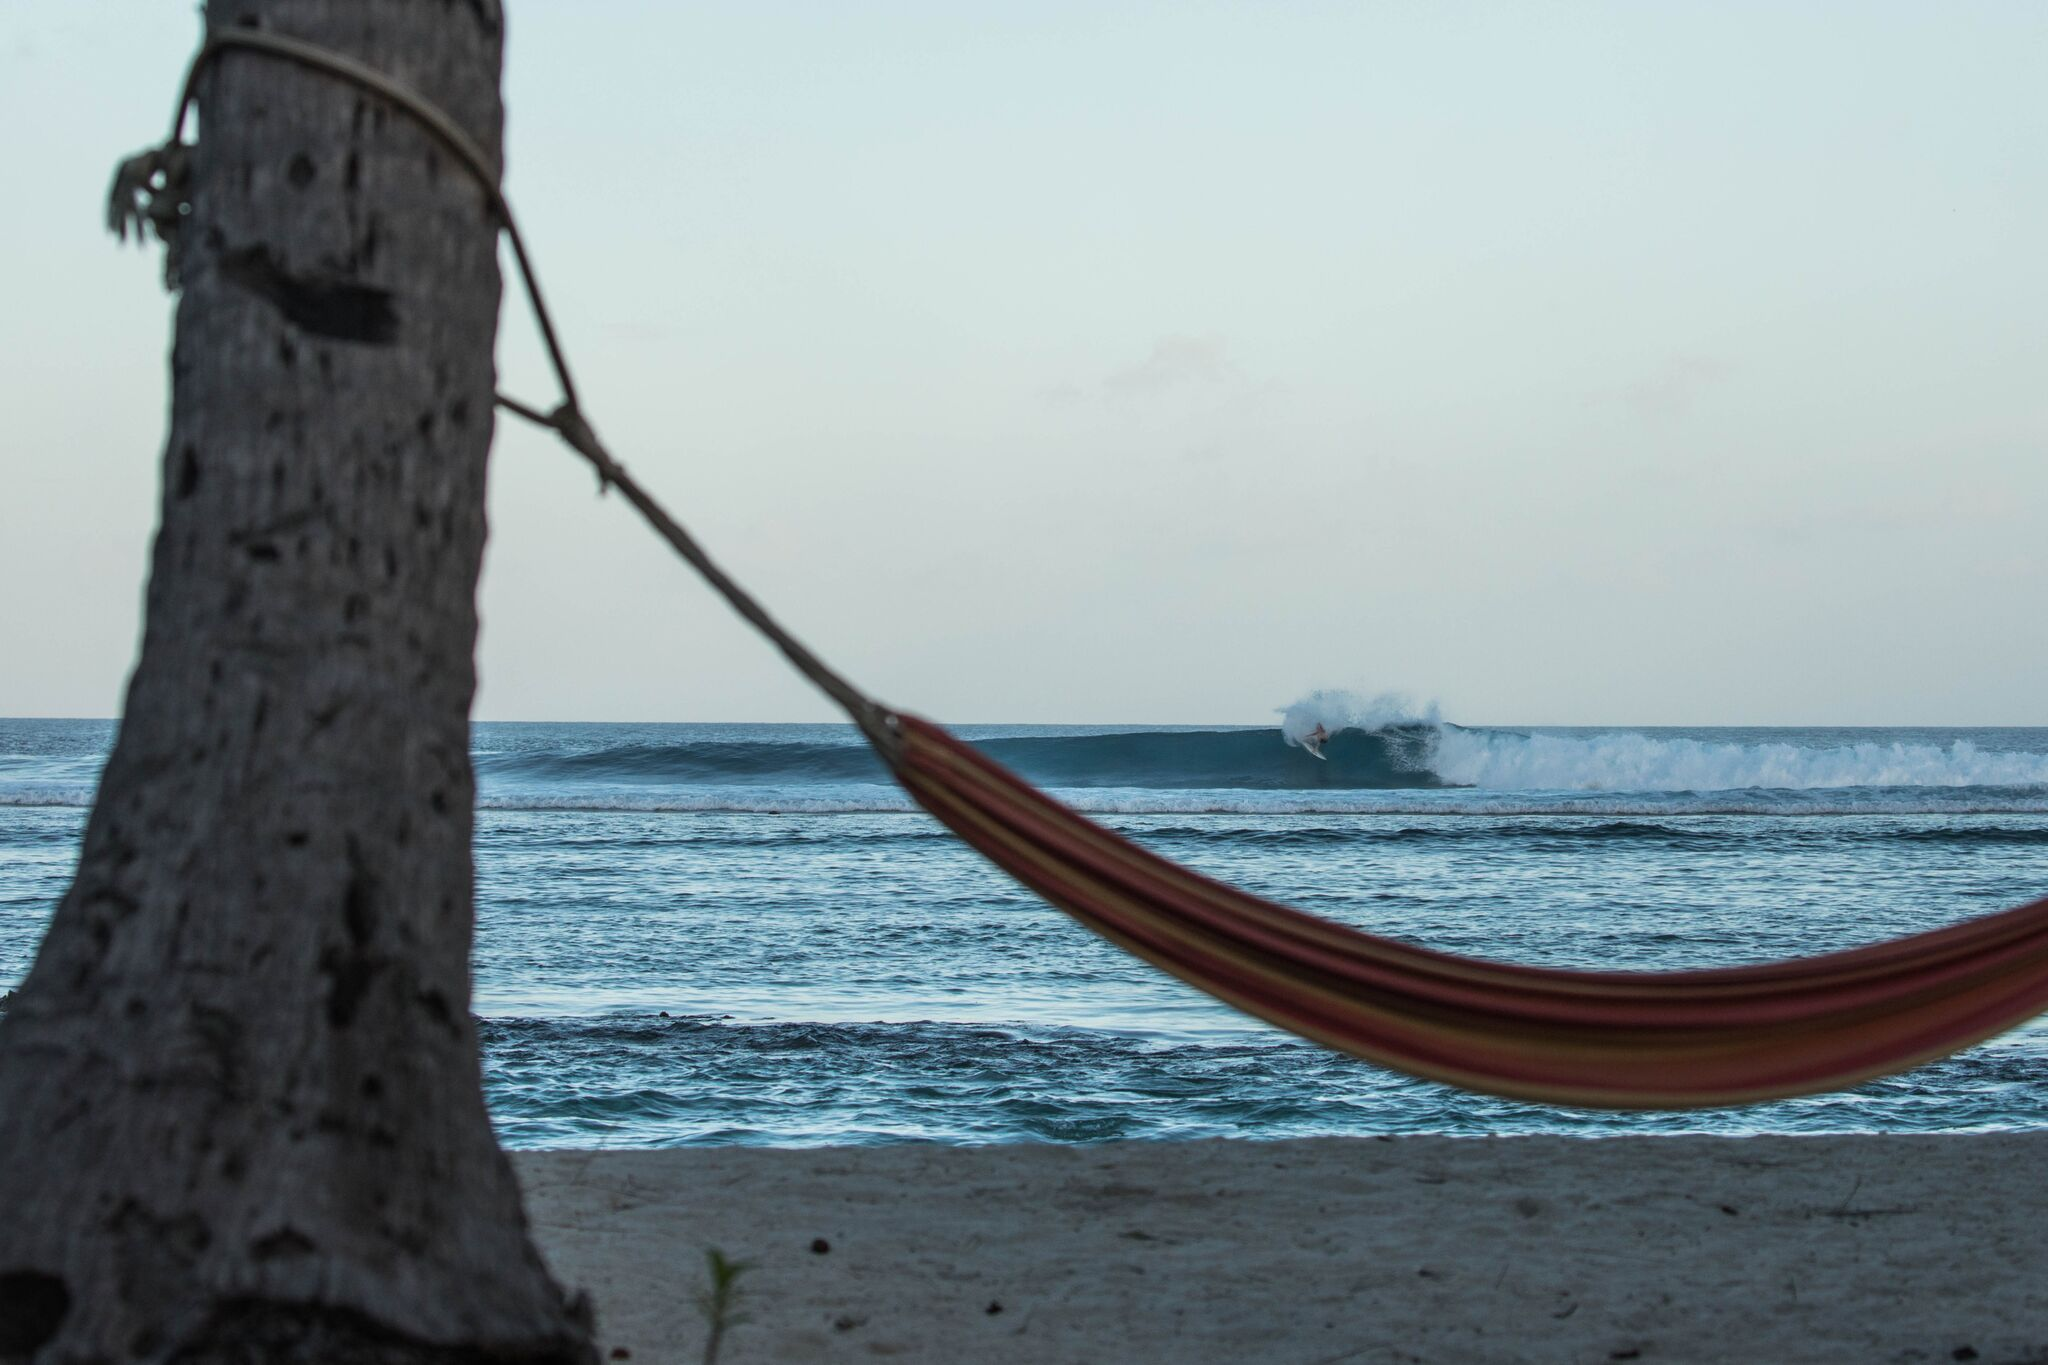 Hammock slasher at cokes. Photo - Andy Potts C/O The Perfect Wave